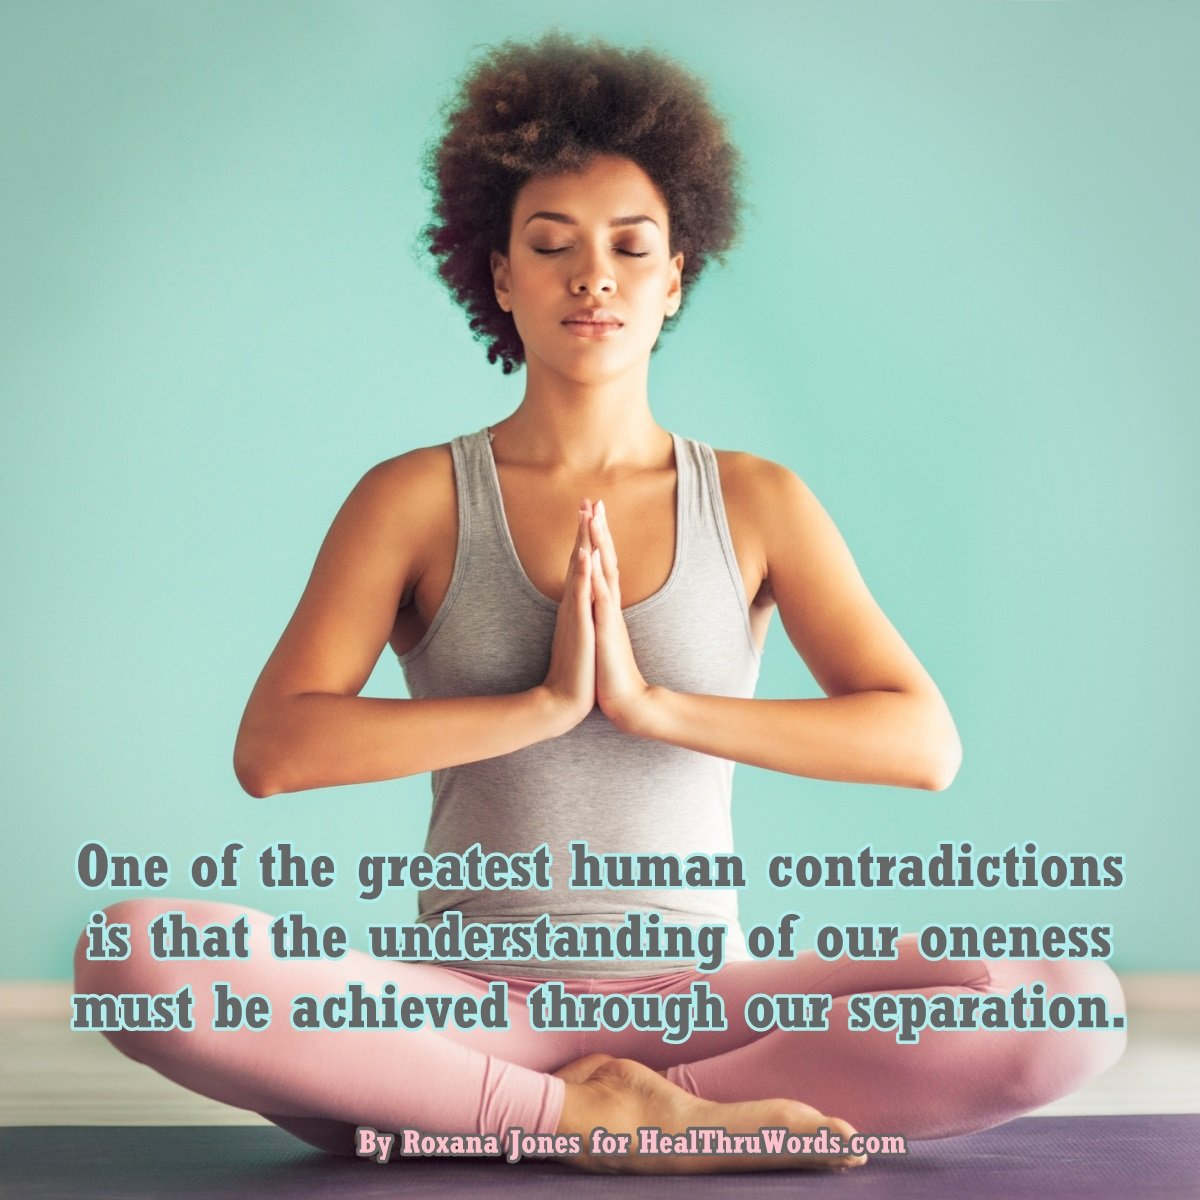 Inspirational Image: From Separation to Oneness